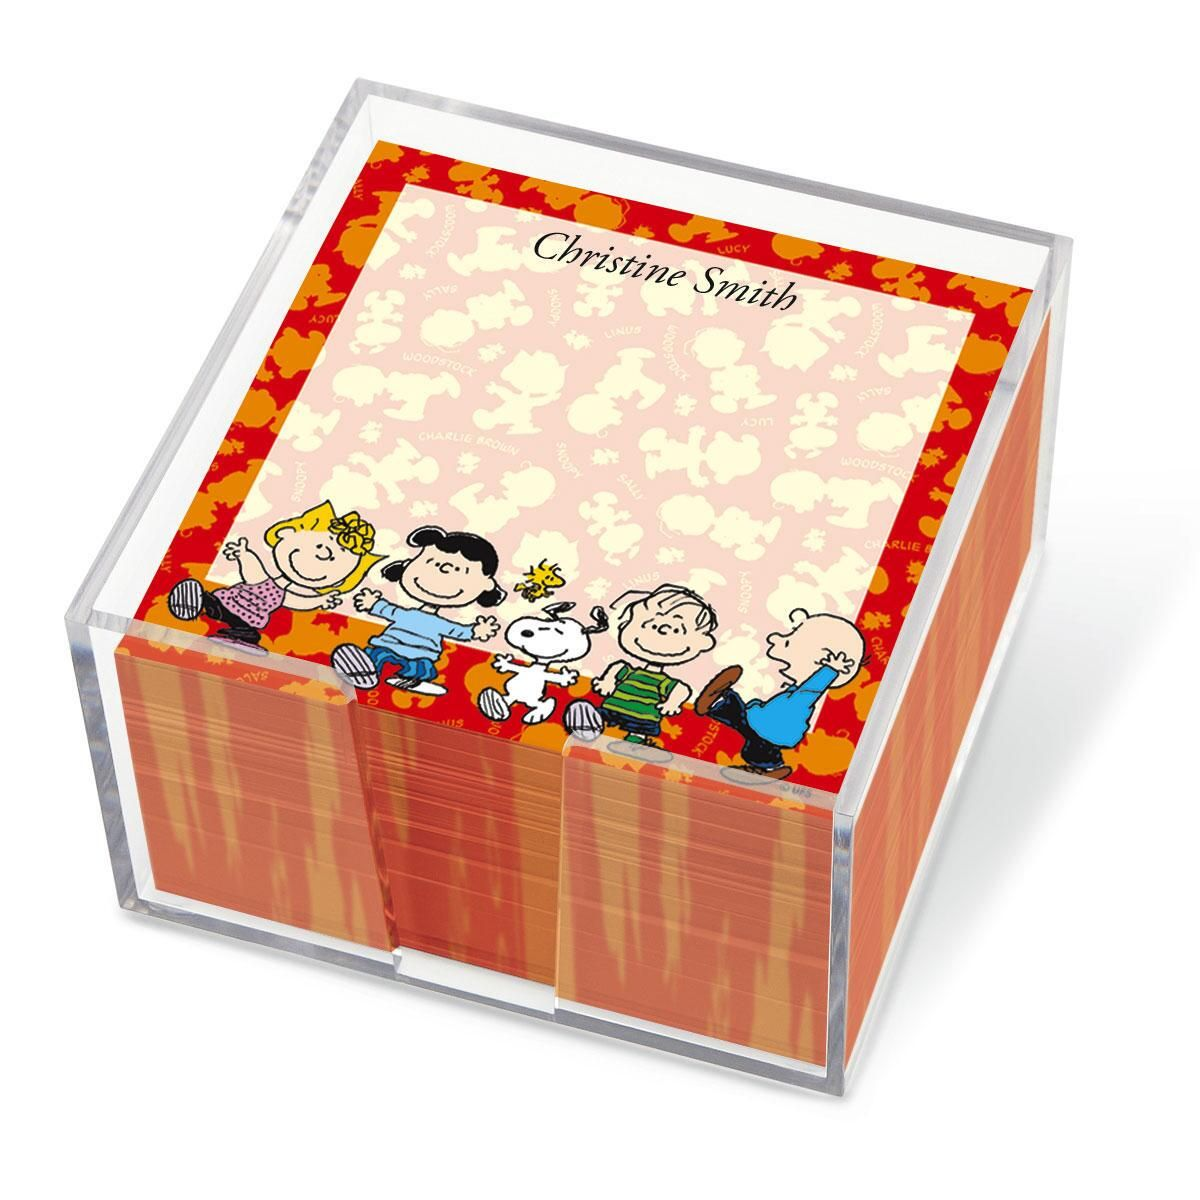 PEANUTS Polka Note Cube Colorful Images